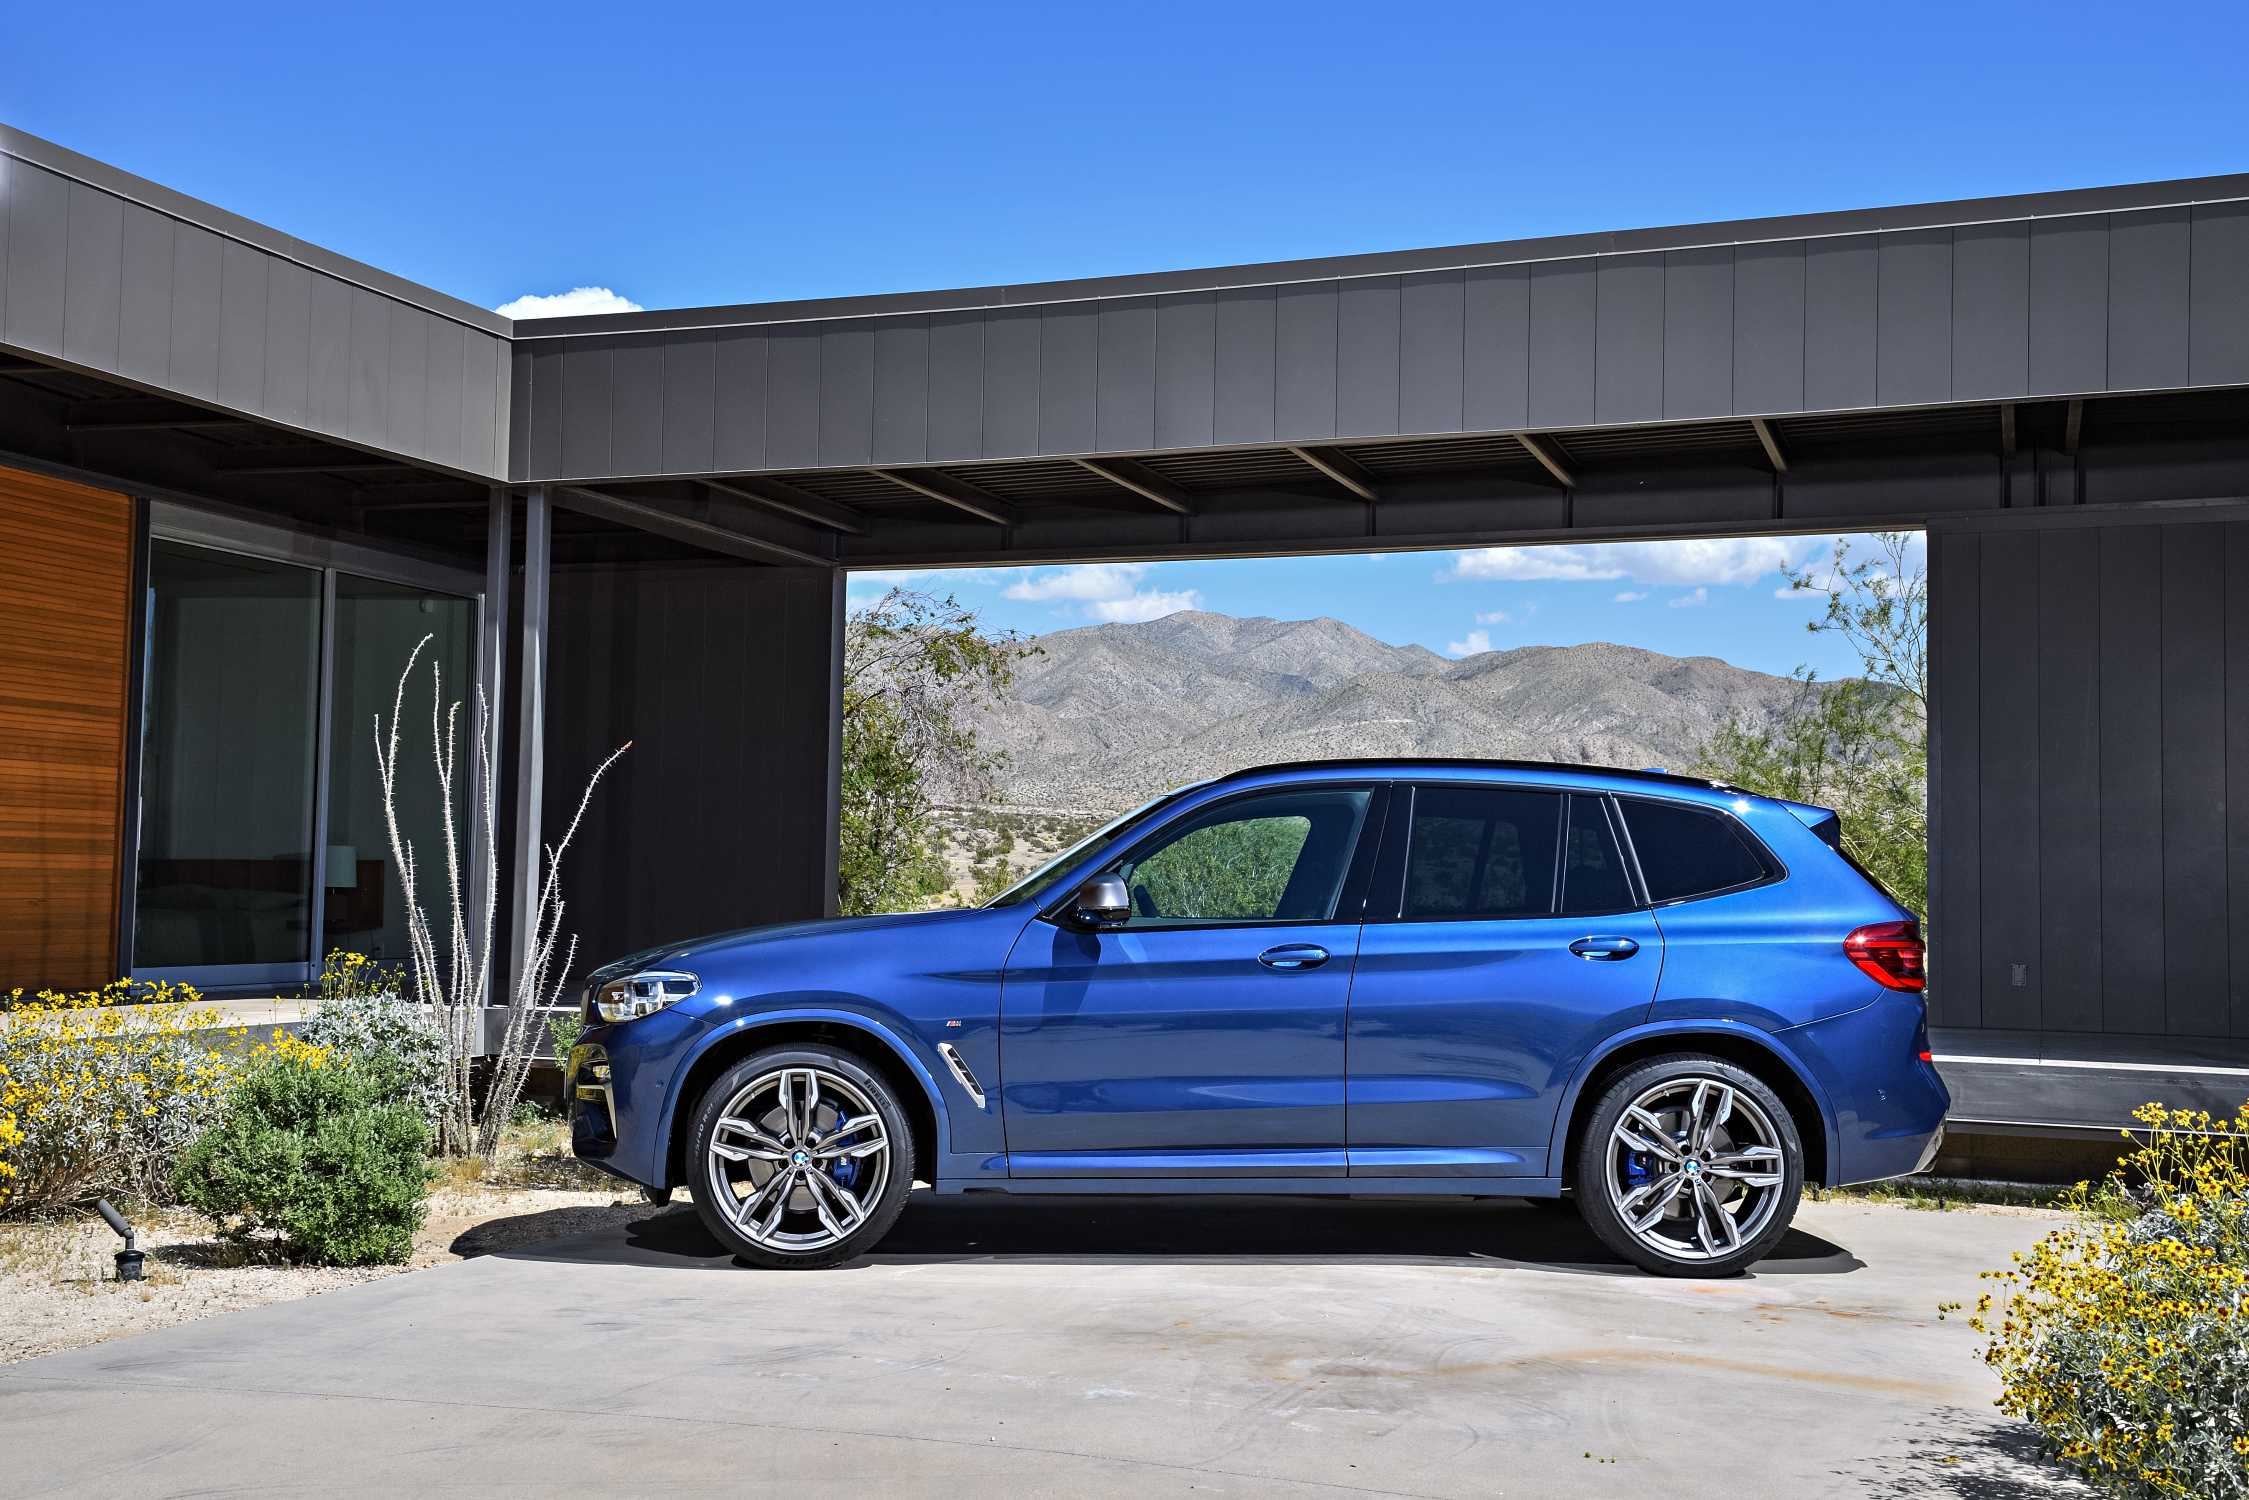 The New Bmw X3 Xdrive M40i Exterior Color Phytonic Blue Metallic Upholstery Leder Vernasca